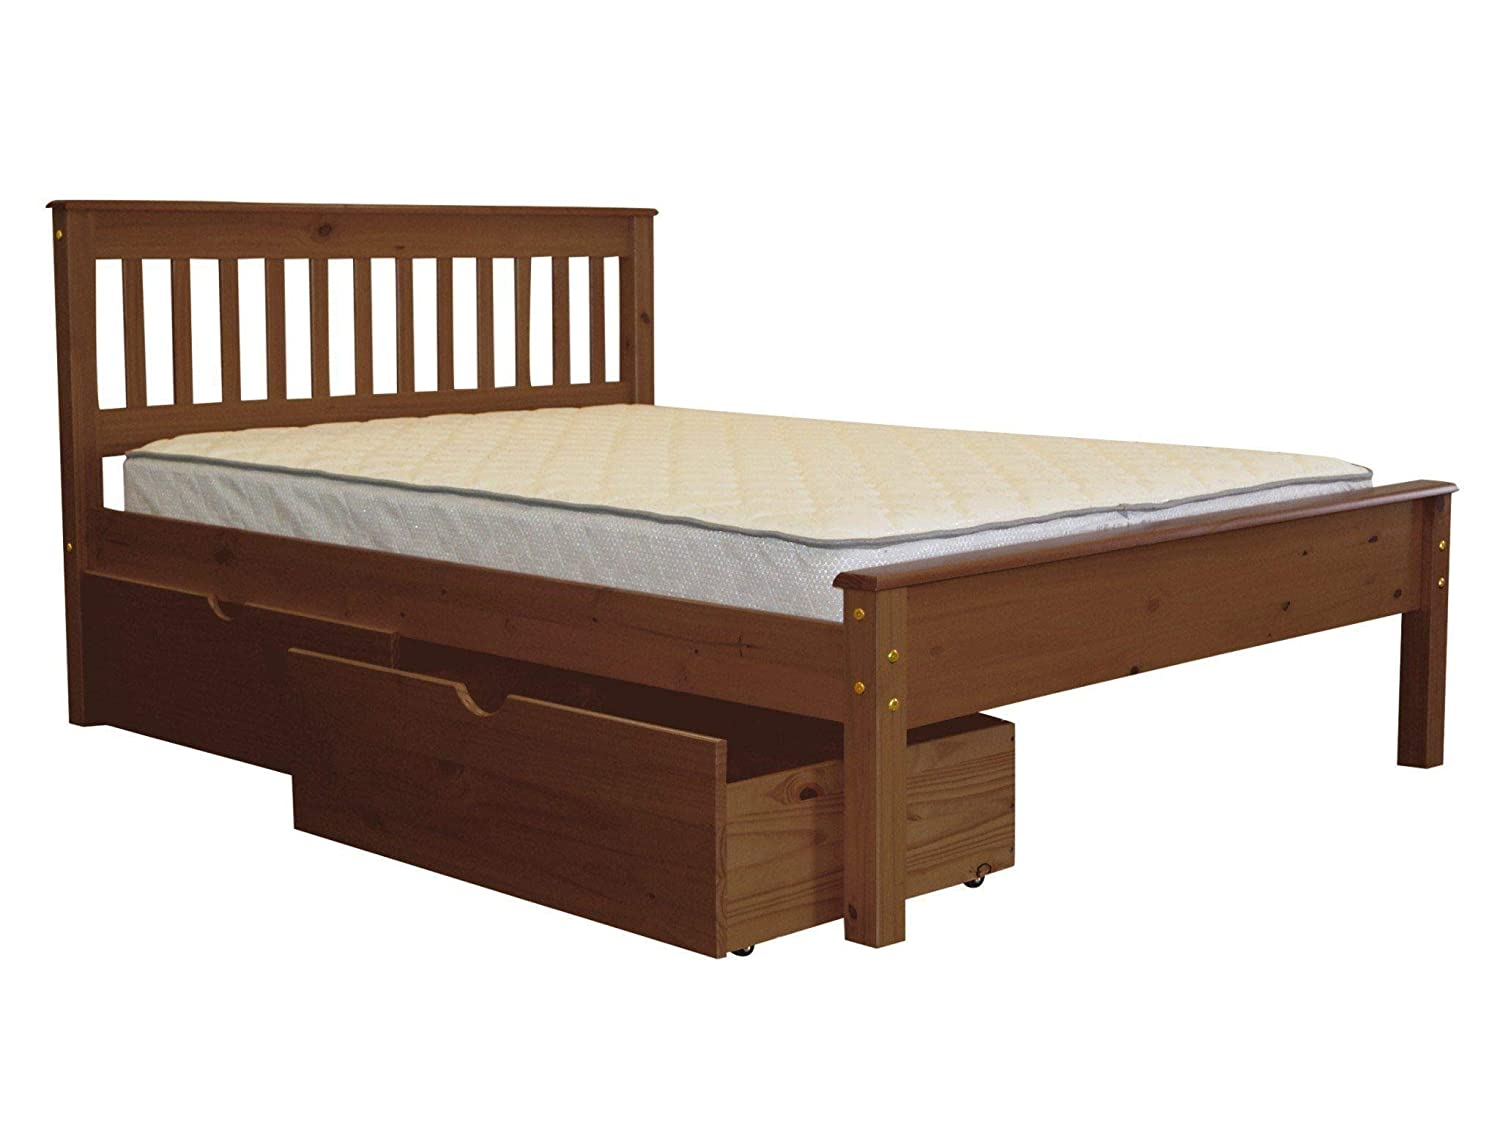 Bedz King Mission Style Full Bed with 2 Under Bed Drawers, Espresso